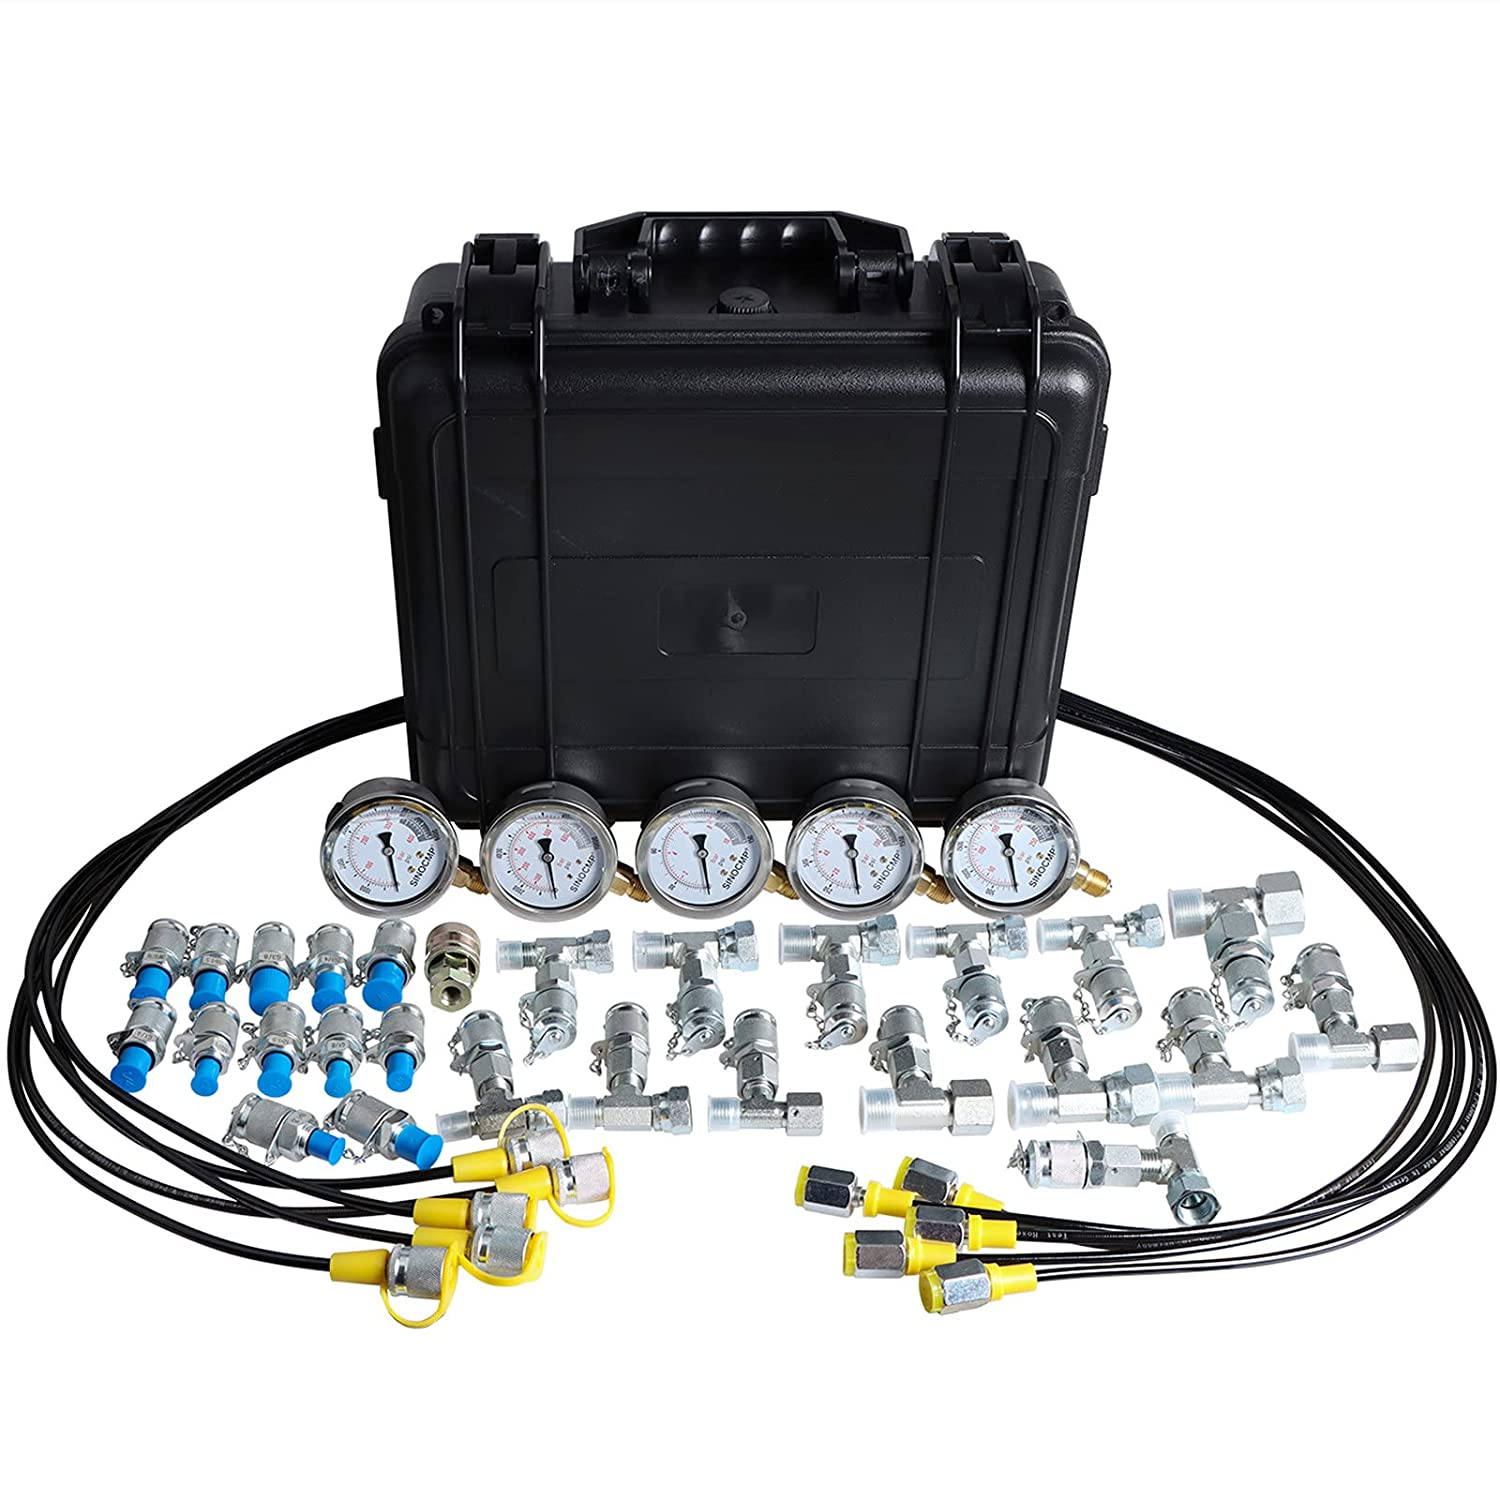 Trust SINOCMP Hydraulic Pressure Test Kit Hoses 5 1 Gauges Max 84% OFF with